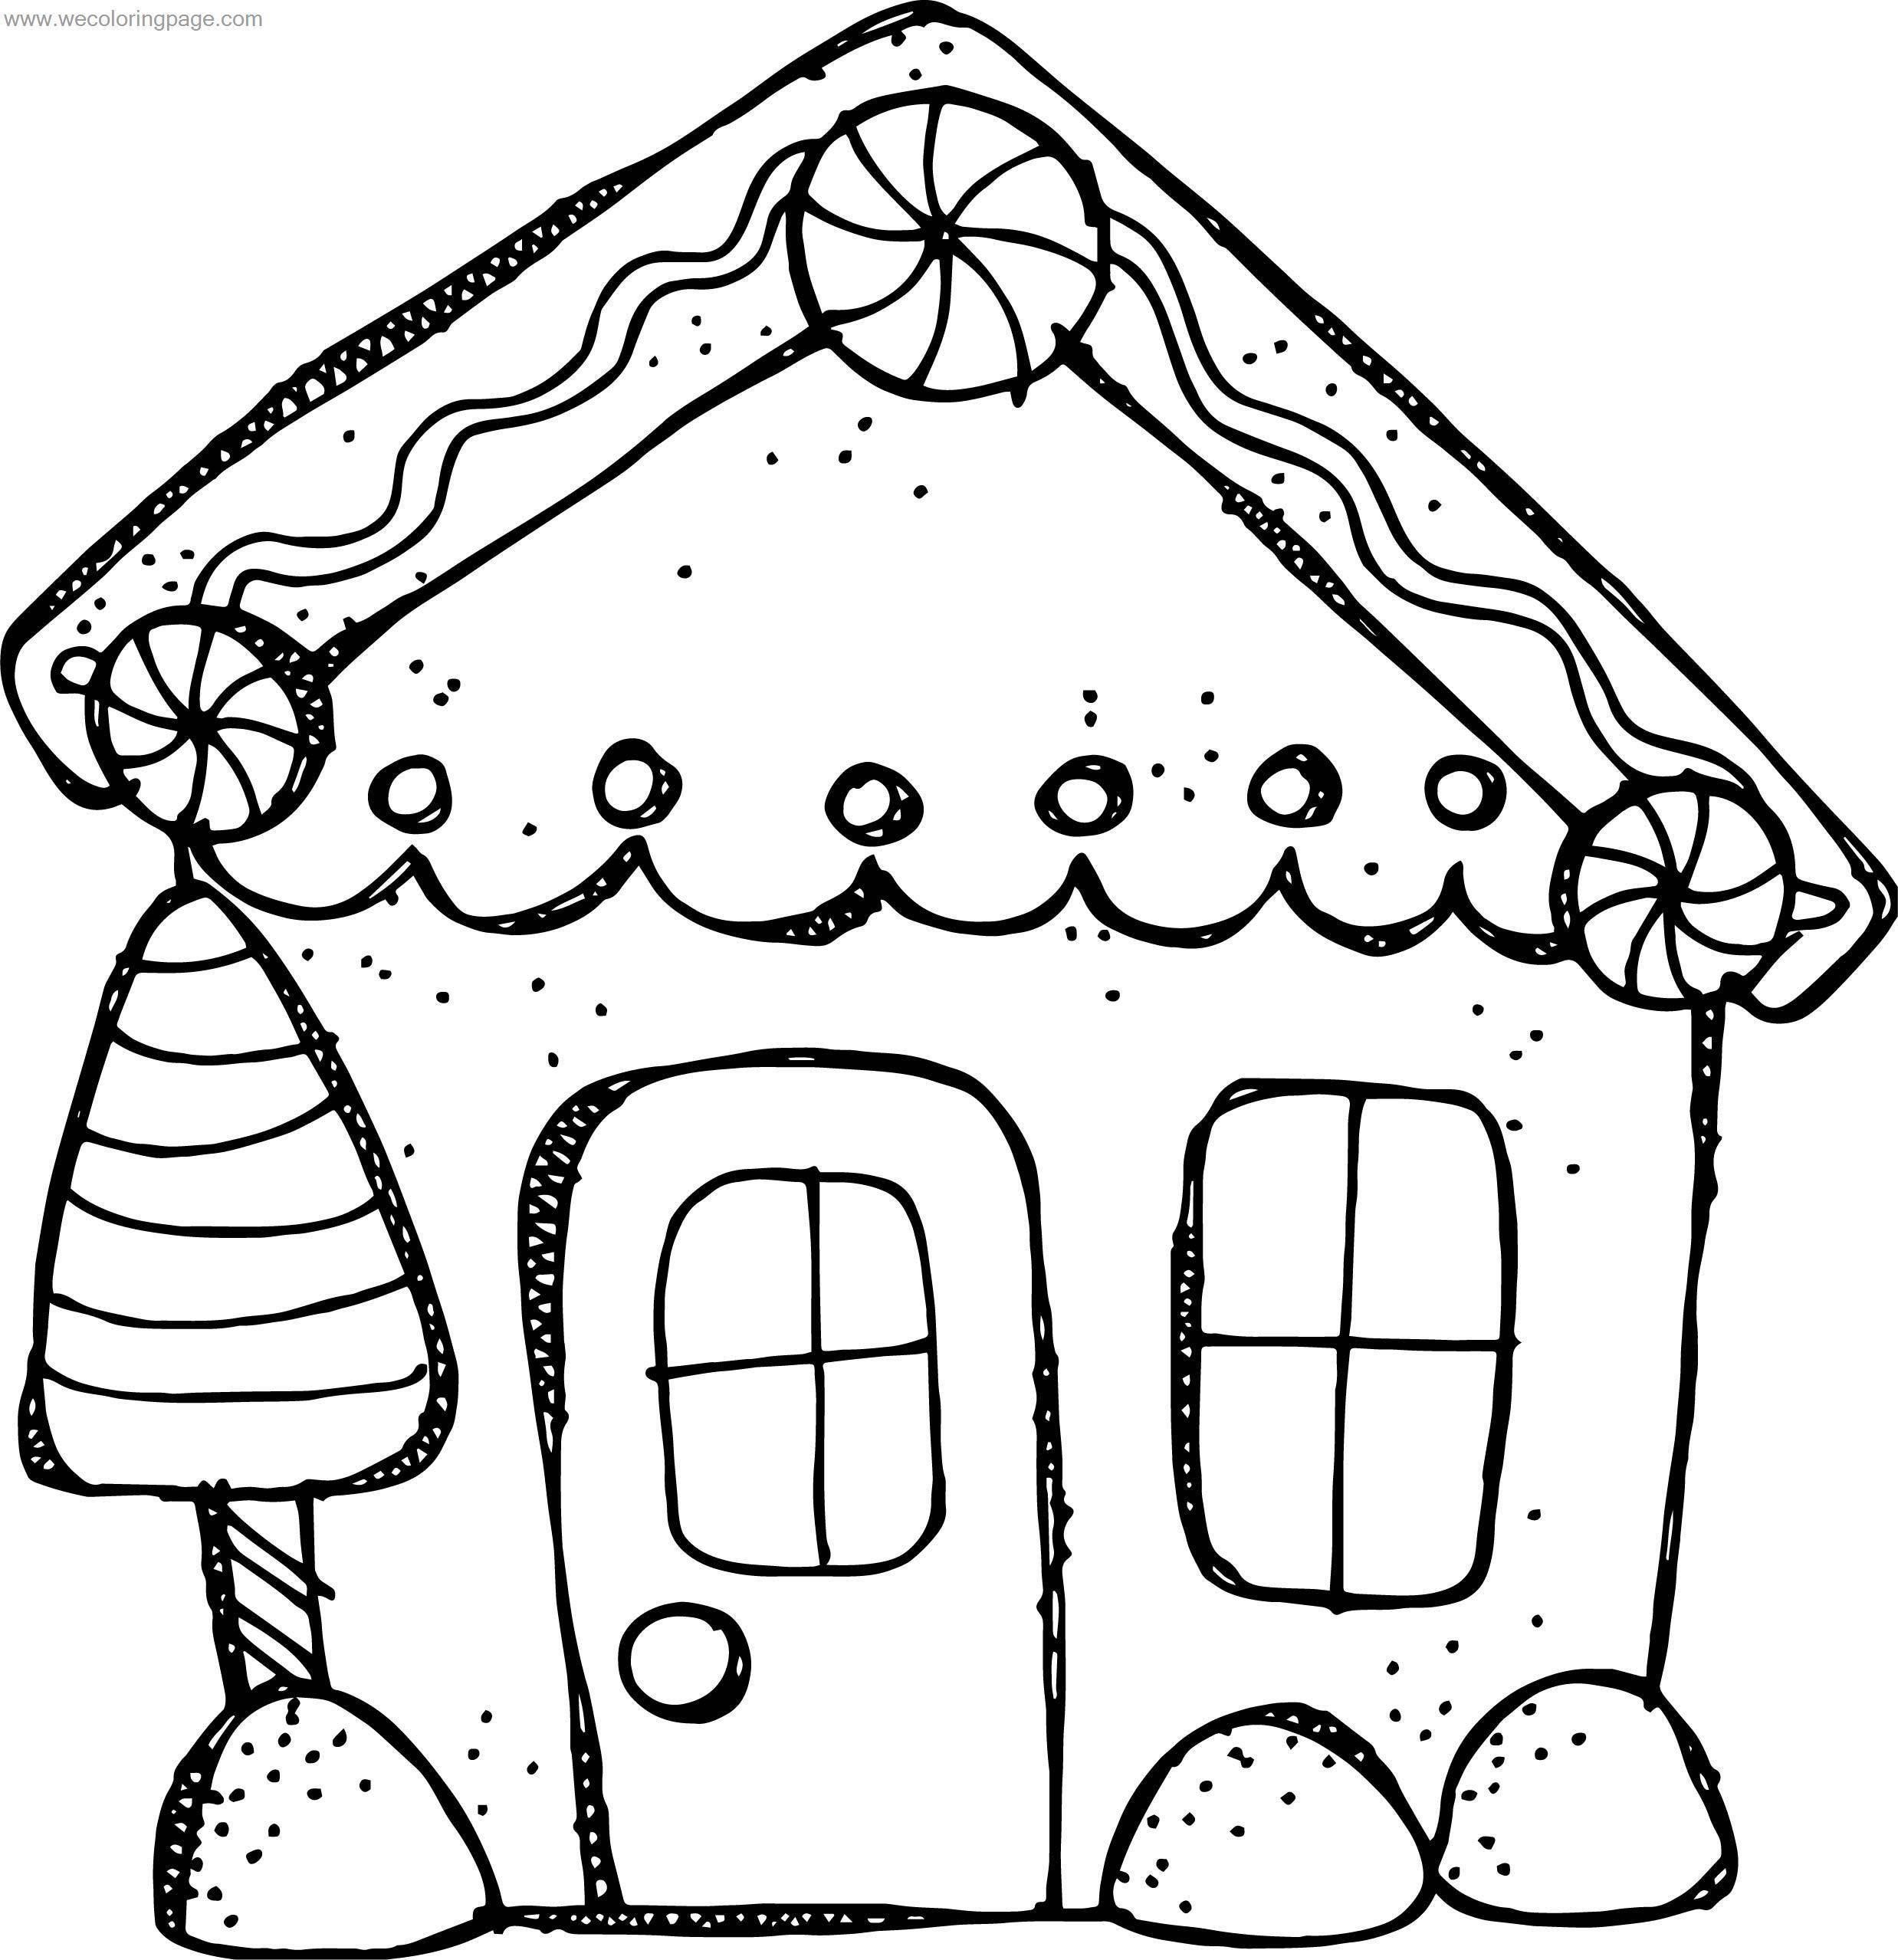 Preschool Gingerbread House Coloring Page | Wecoloringpage.com